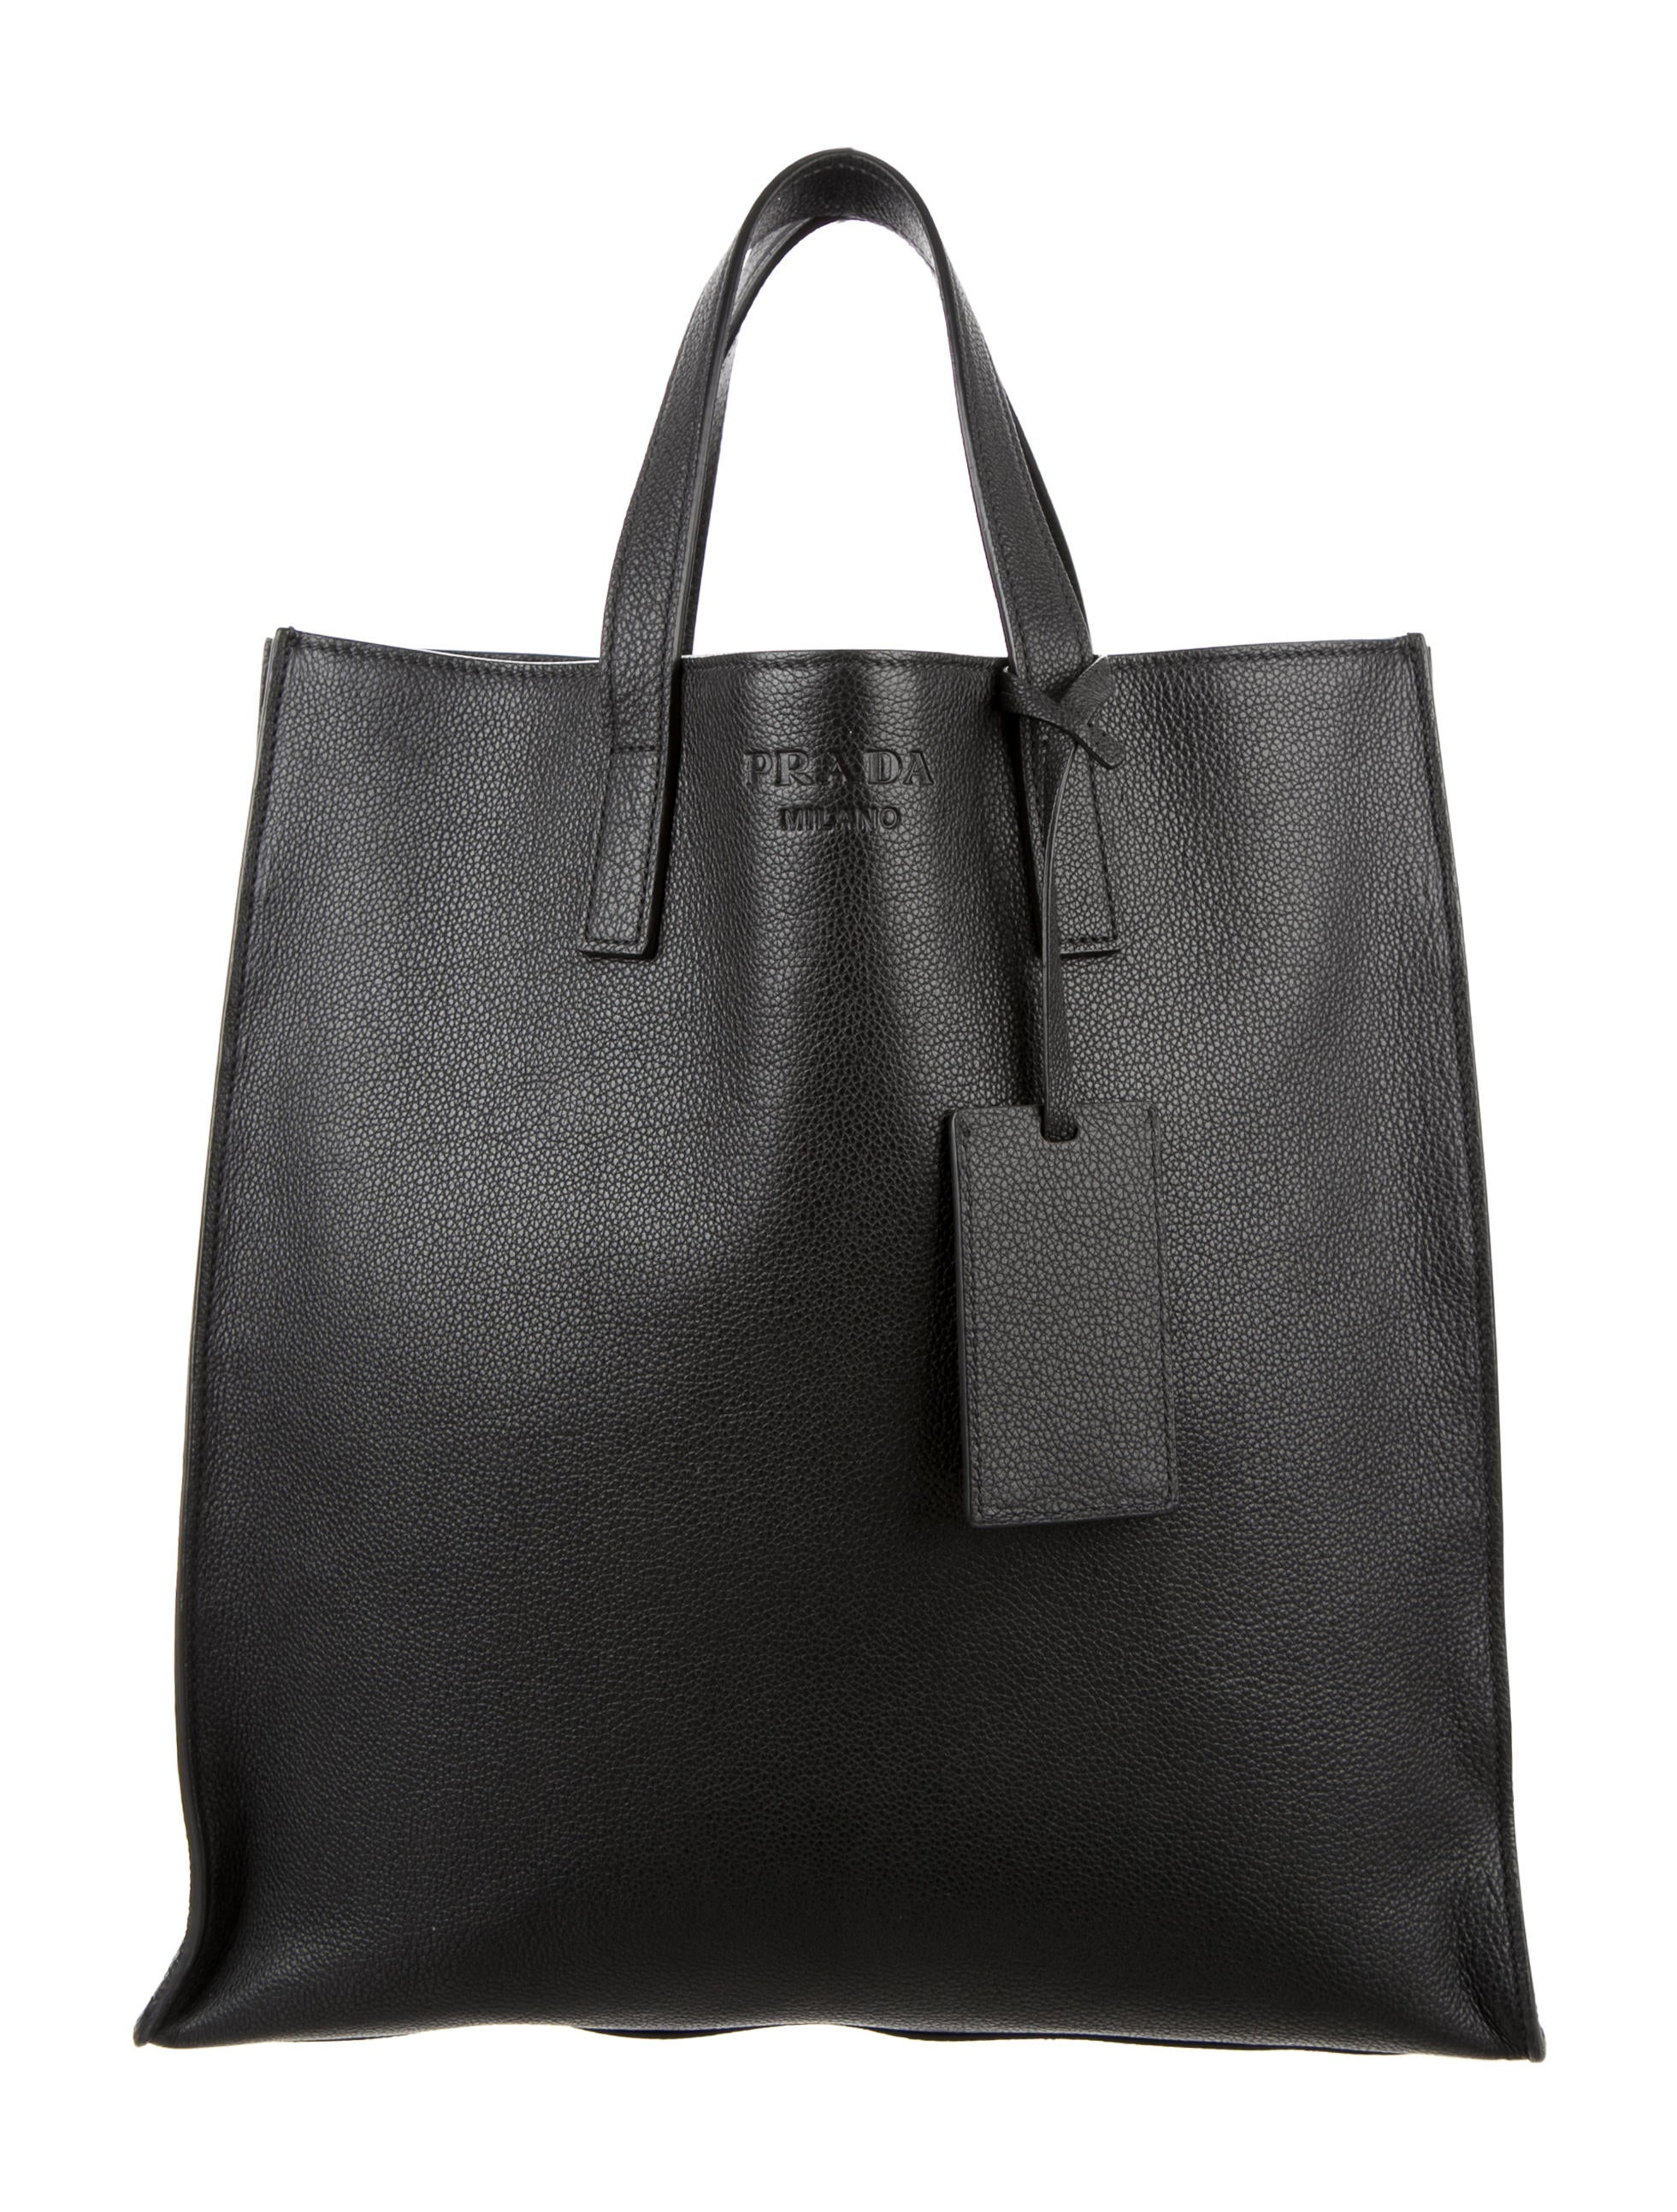 d8398f1abacf Prada Vitello Grain Shopping Tote - Bags - PRA126029 | The RealReal